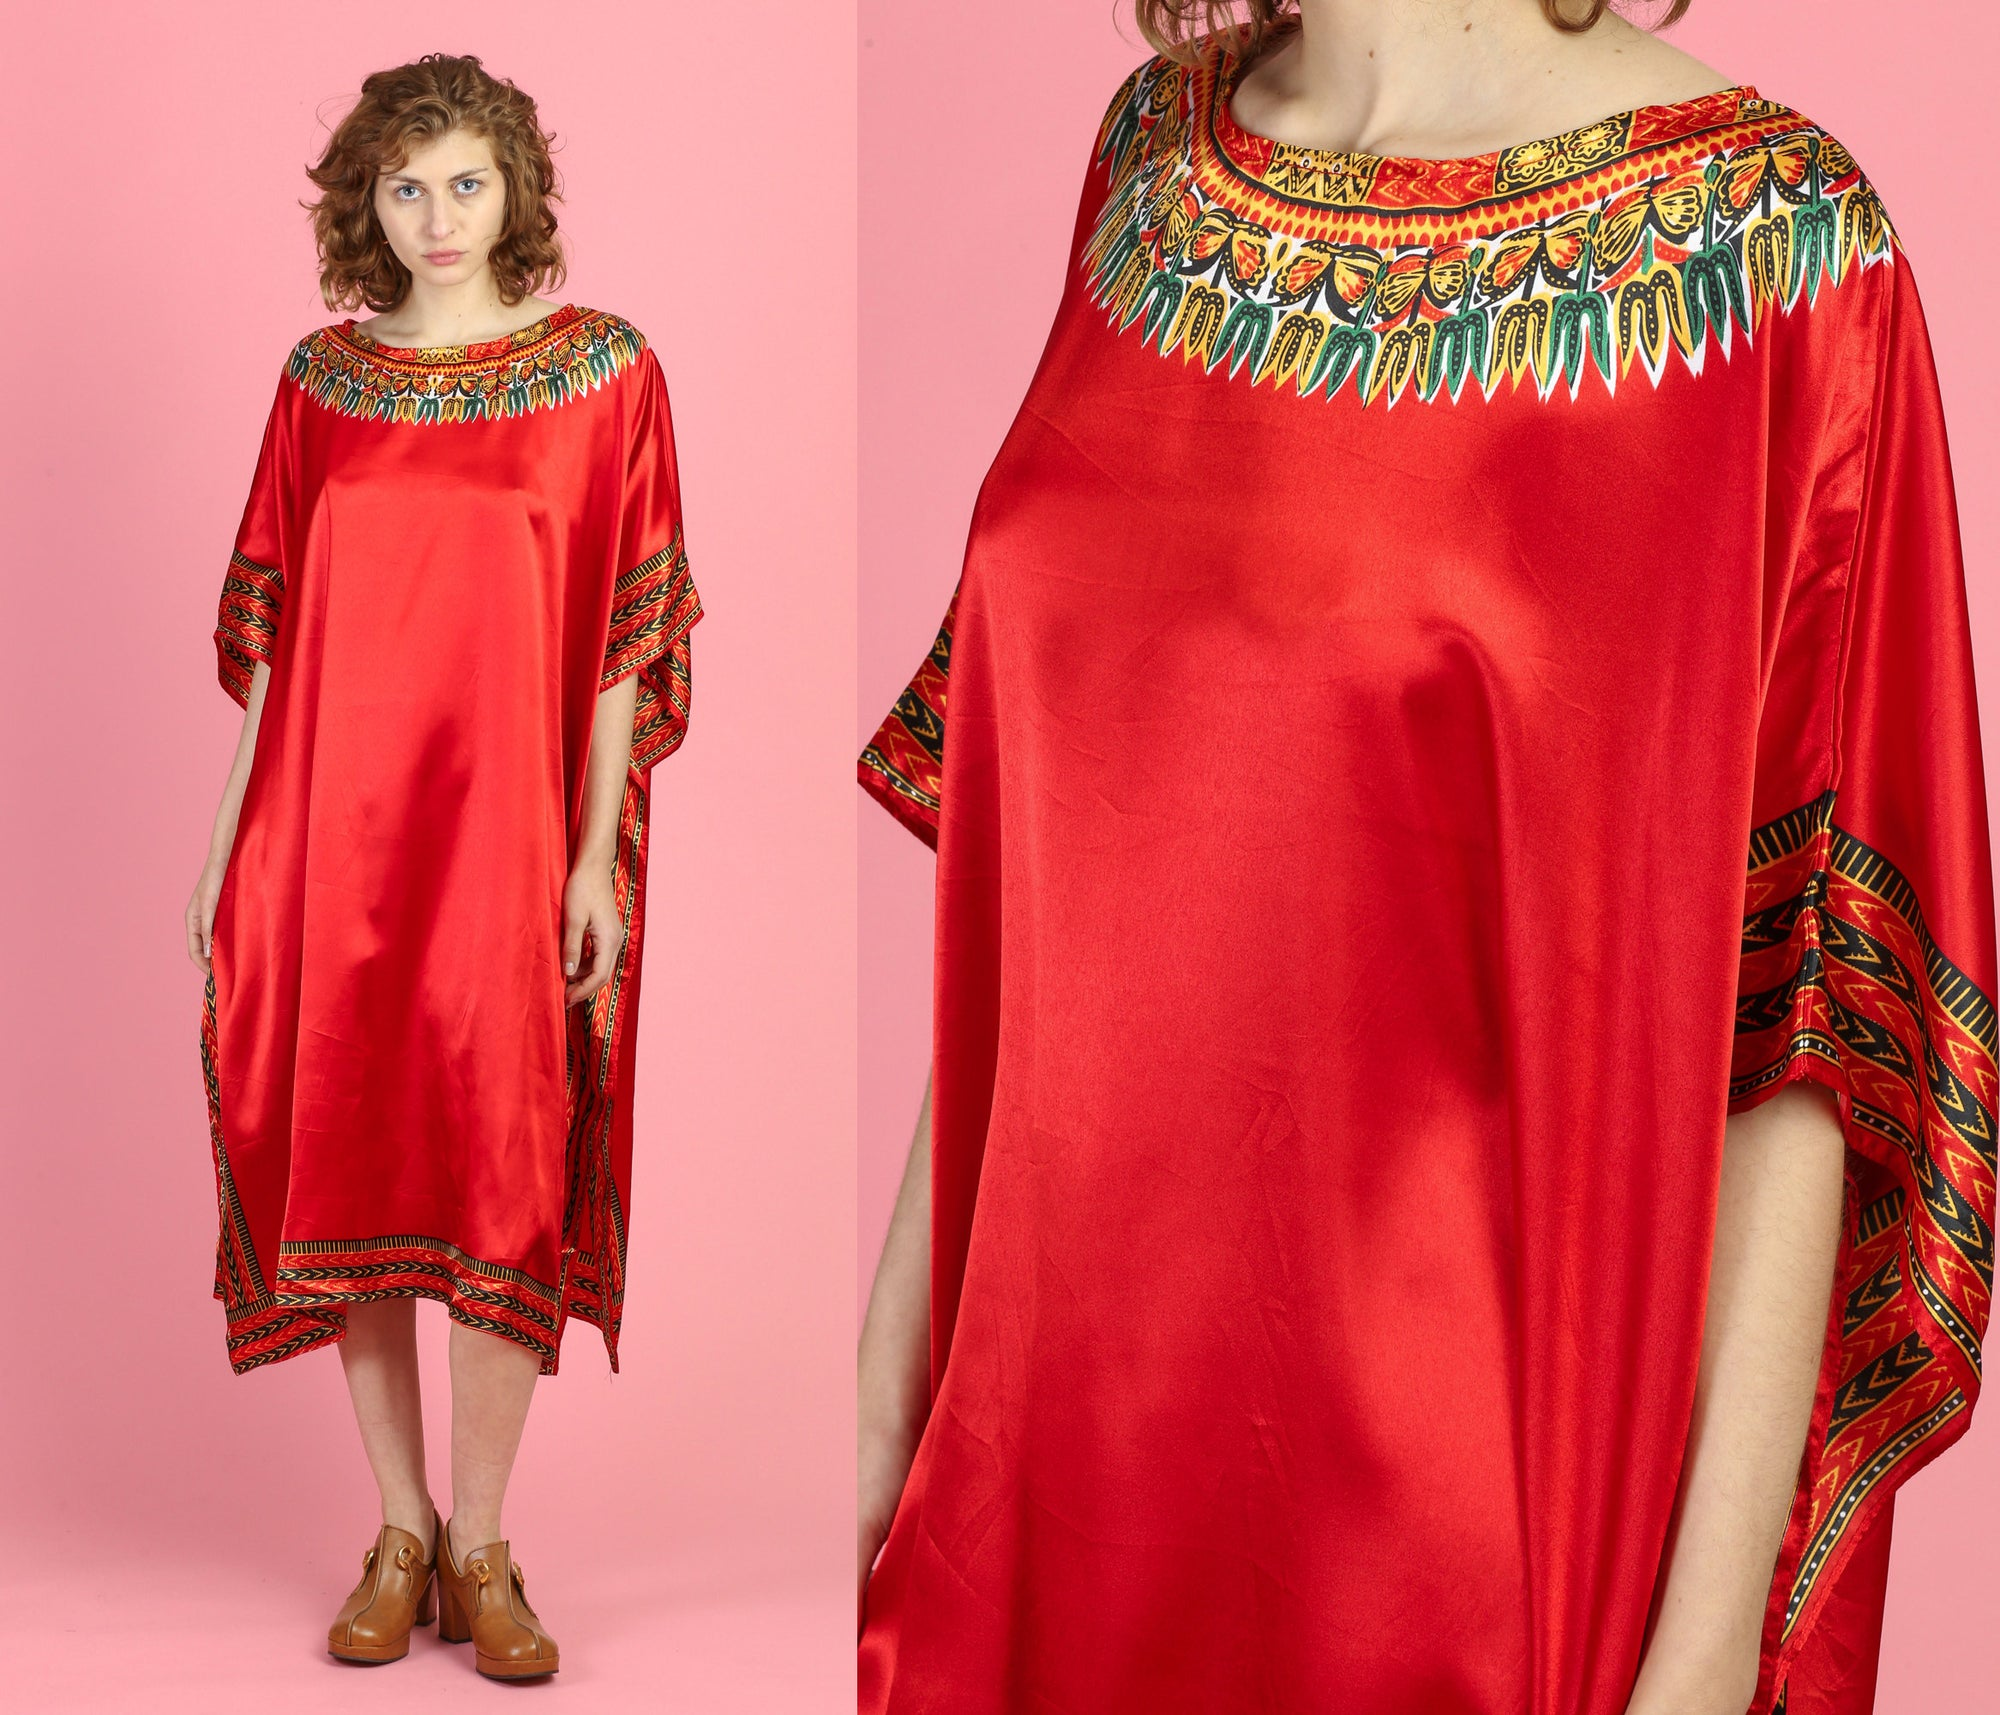 Vintage Red Satin Boho Caftan - One Size